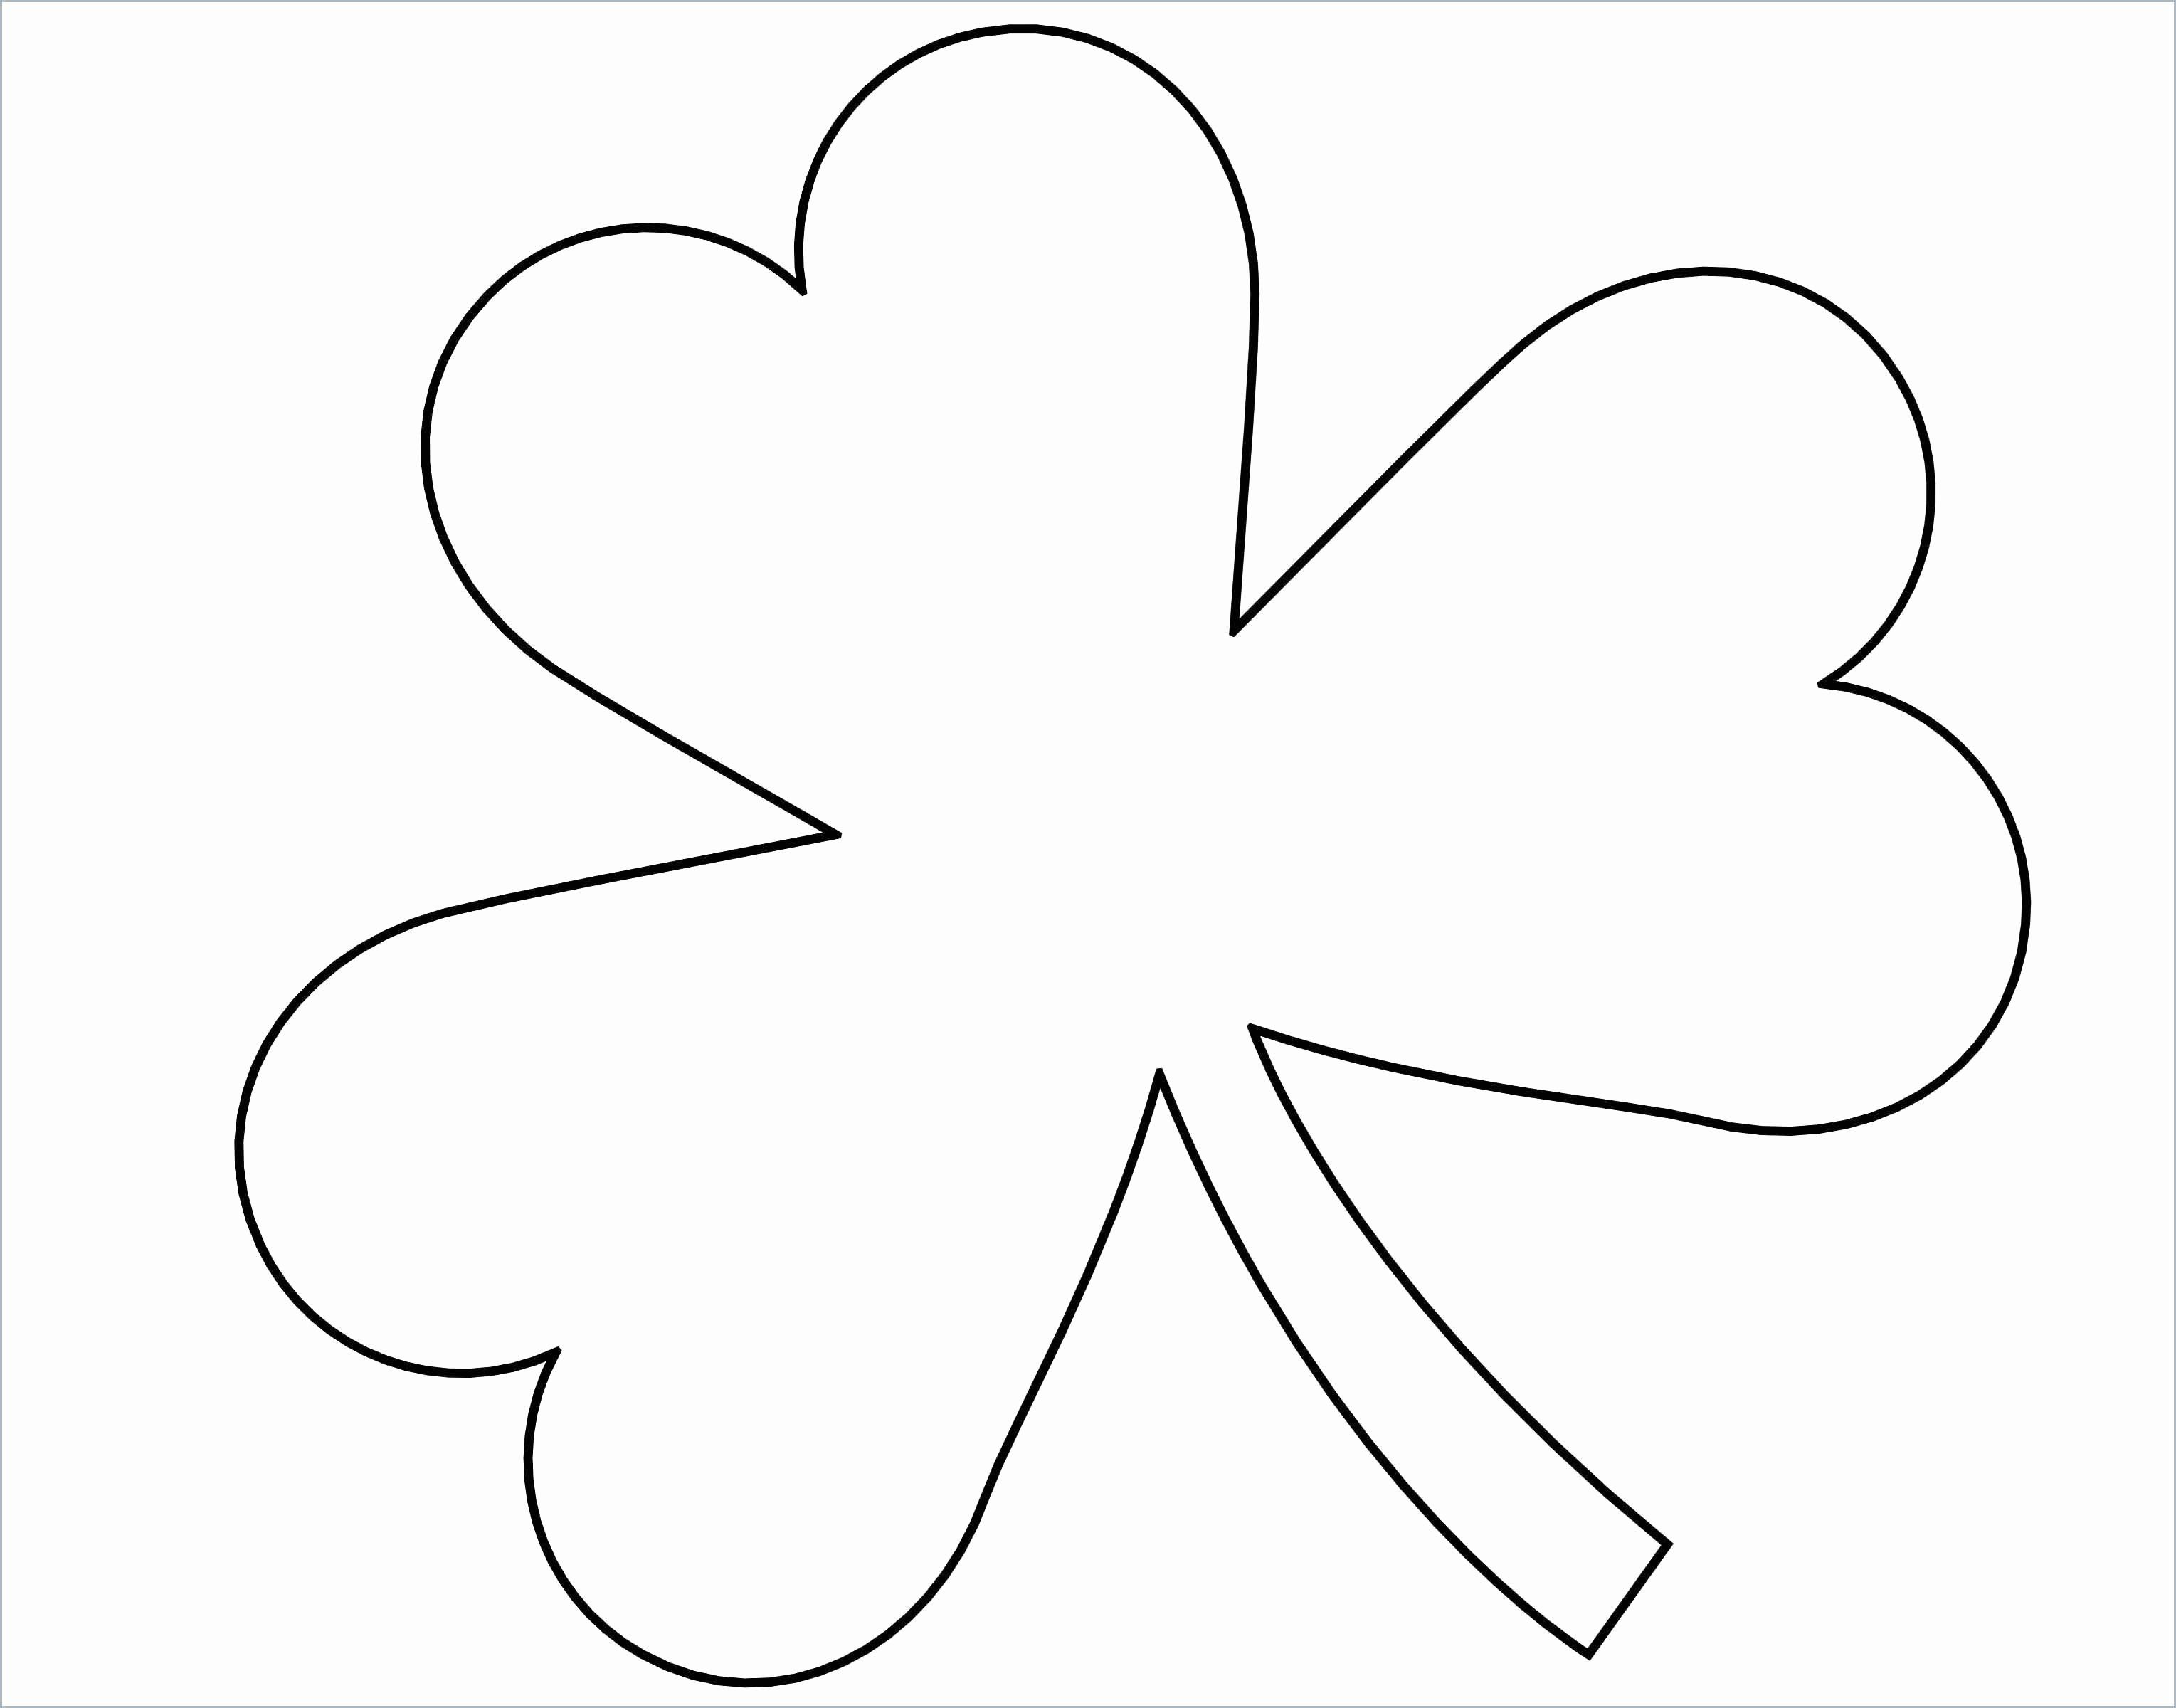 Shamrock Coloring Page Free From Coloringpage Eu Lots Of Free Shamrock Color St Patricks Day Crafts For Kids St Patrick Day Activities St Patrick S Day Crafts